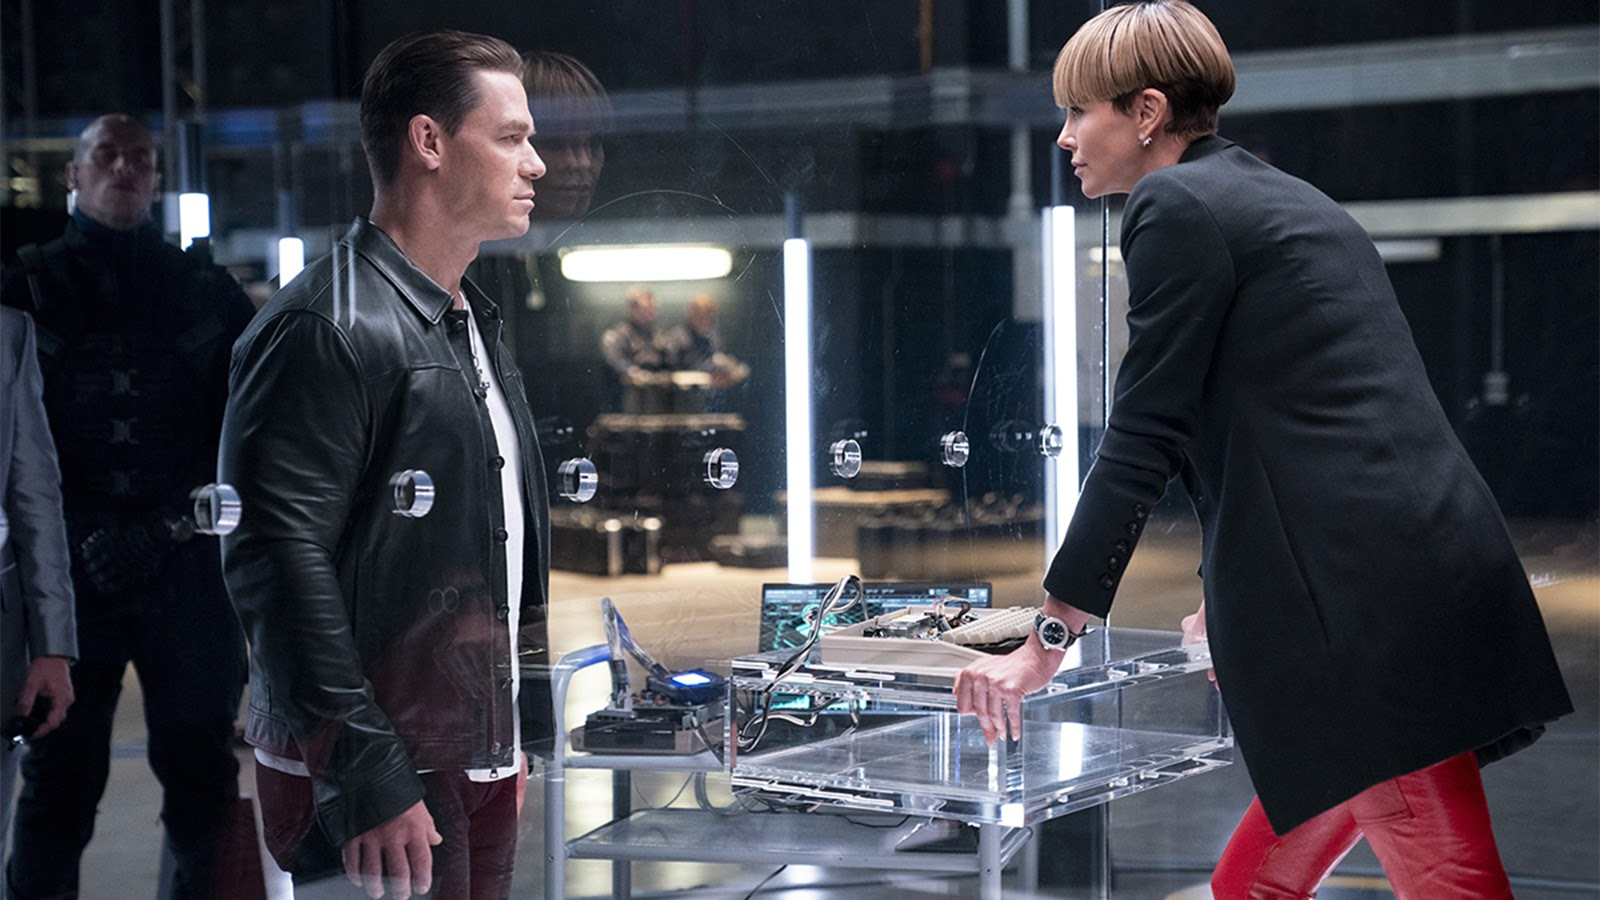 Jakob (John Cena) and Cypher (Charlize Theron) in F9